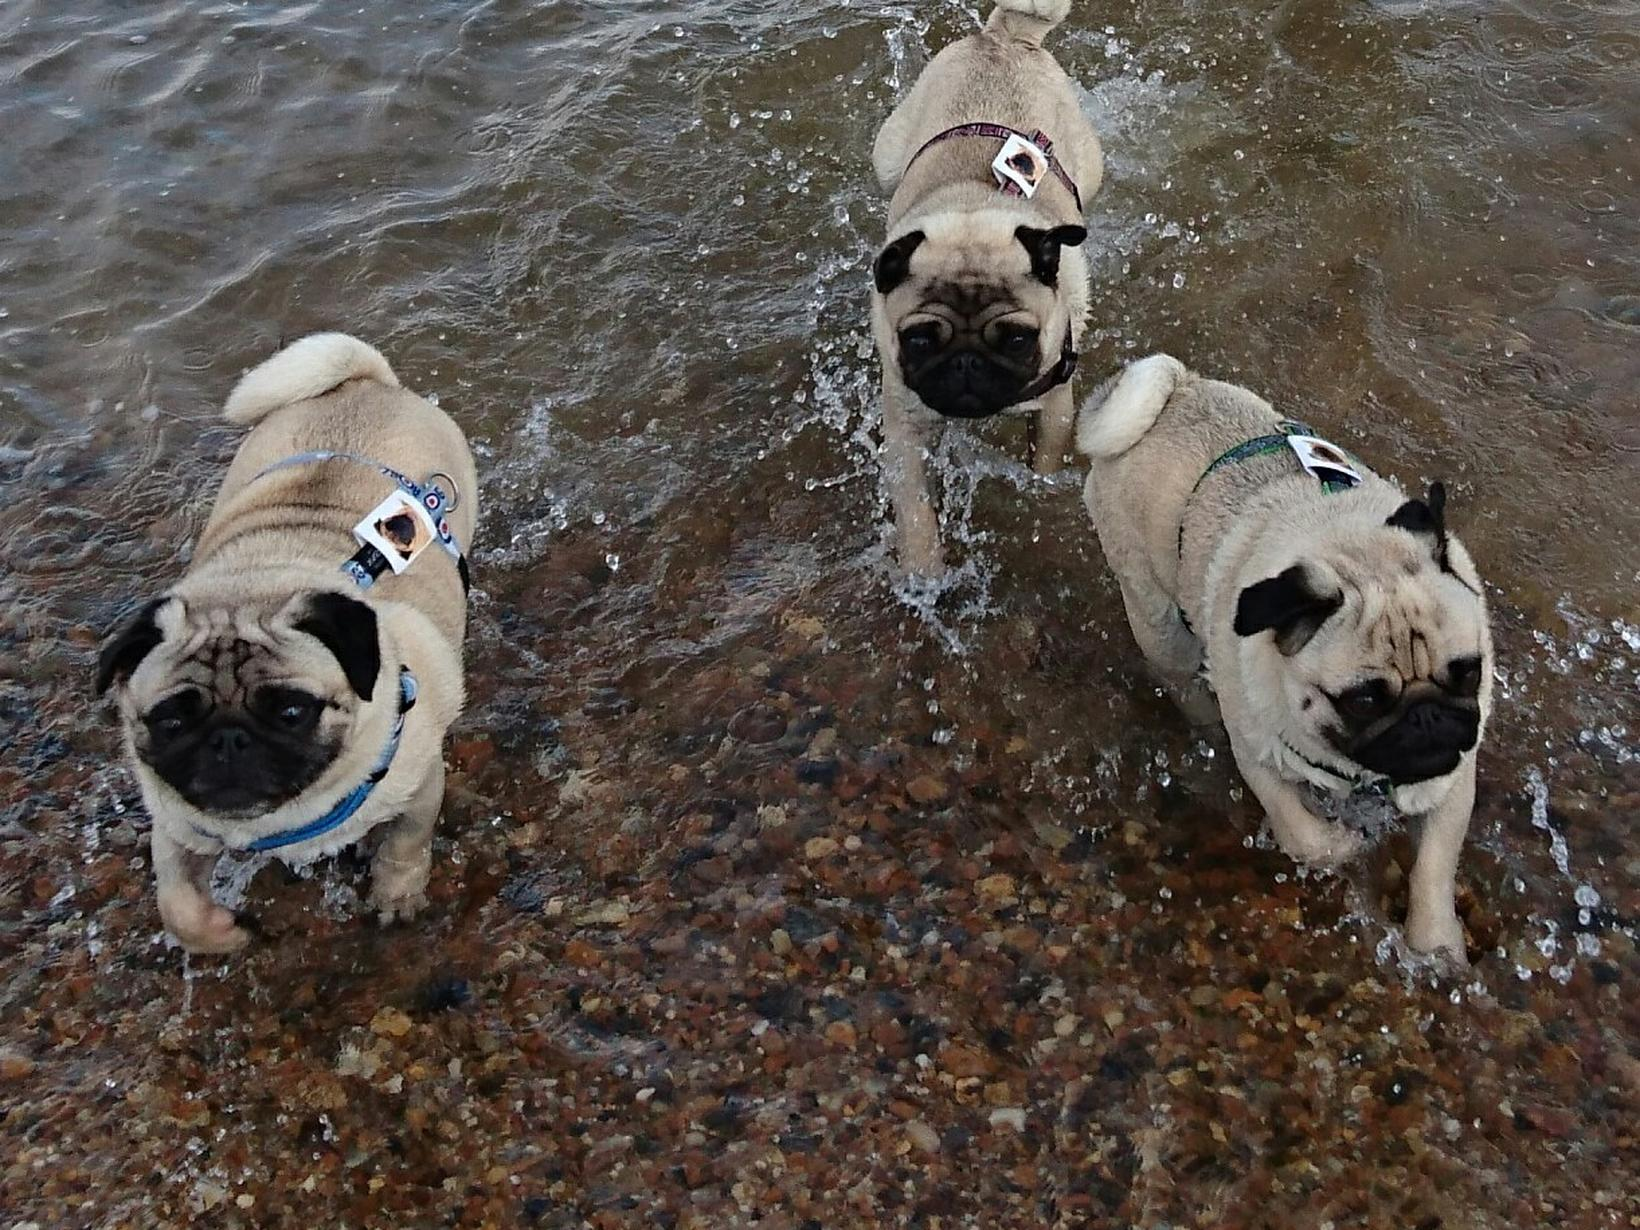 Playful pugs in France